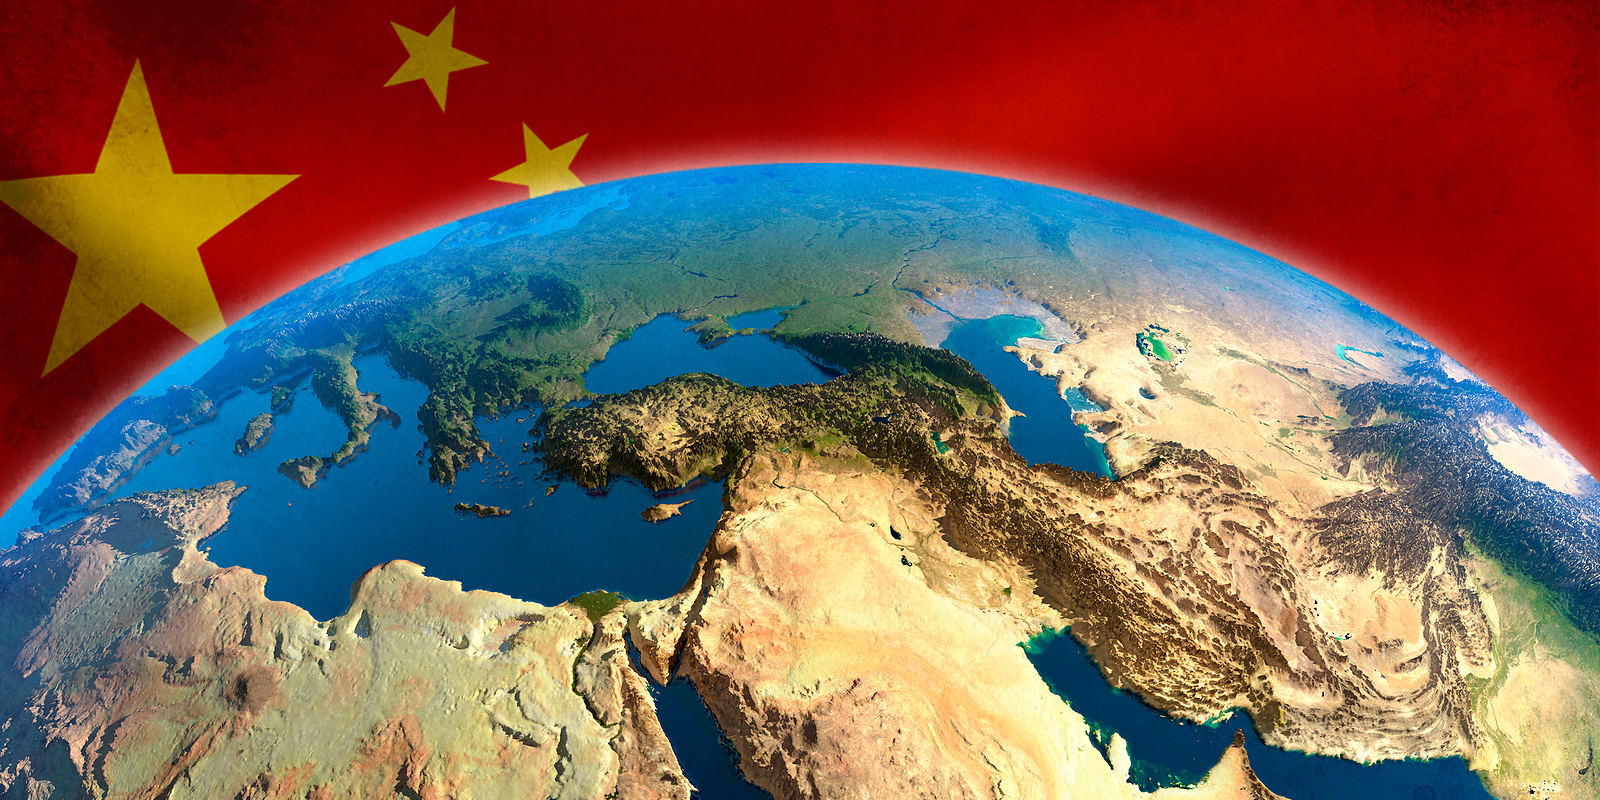 Middle East view from satellites and china flag illustration